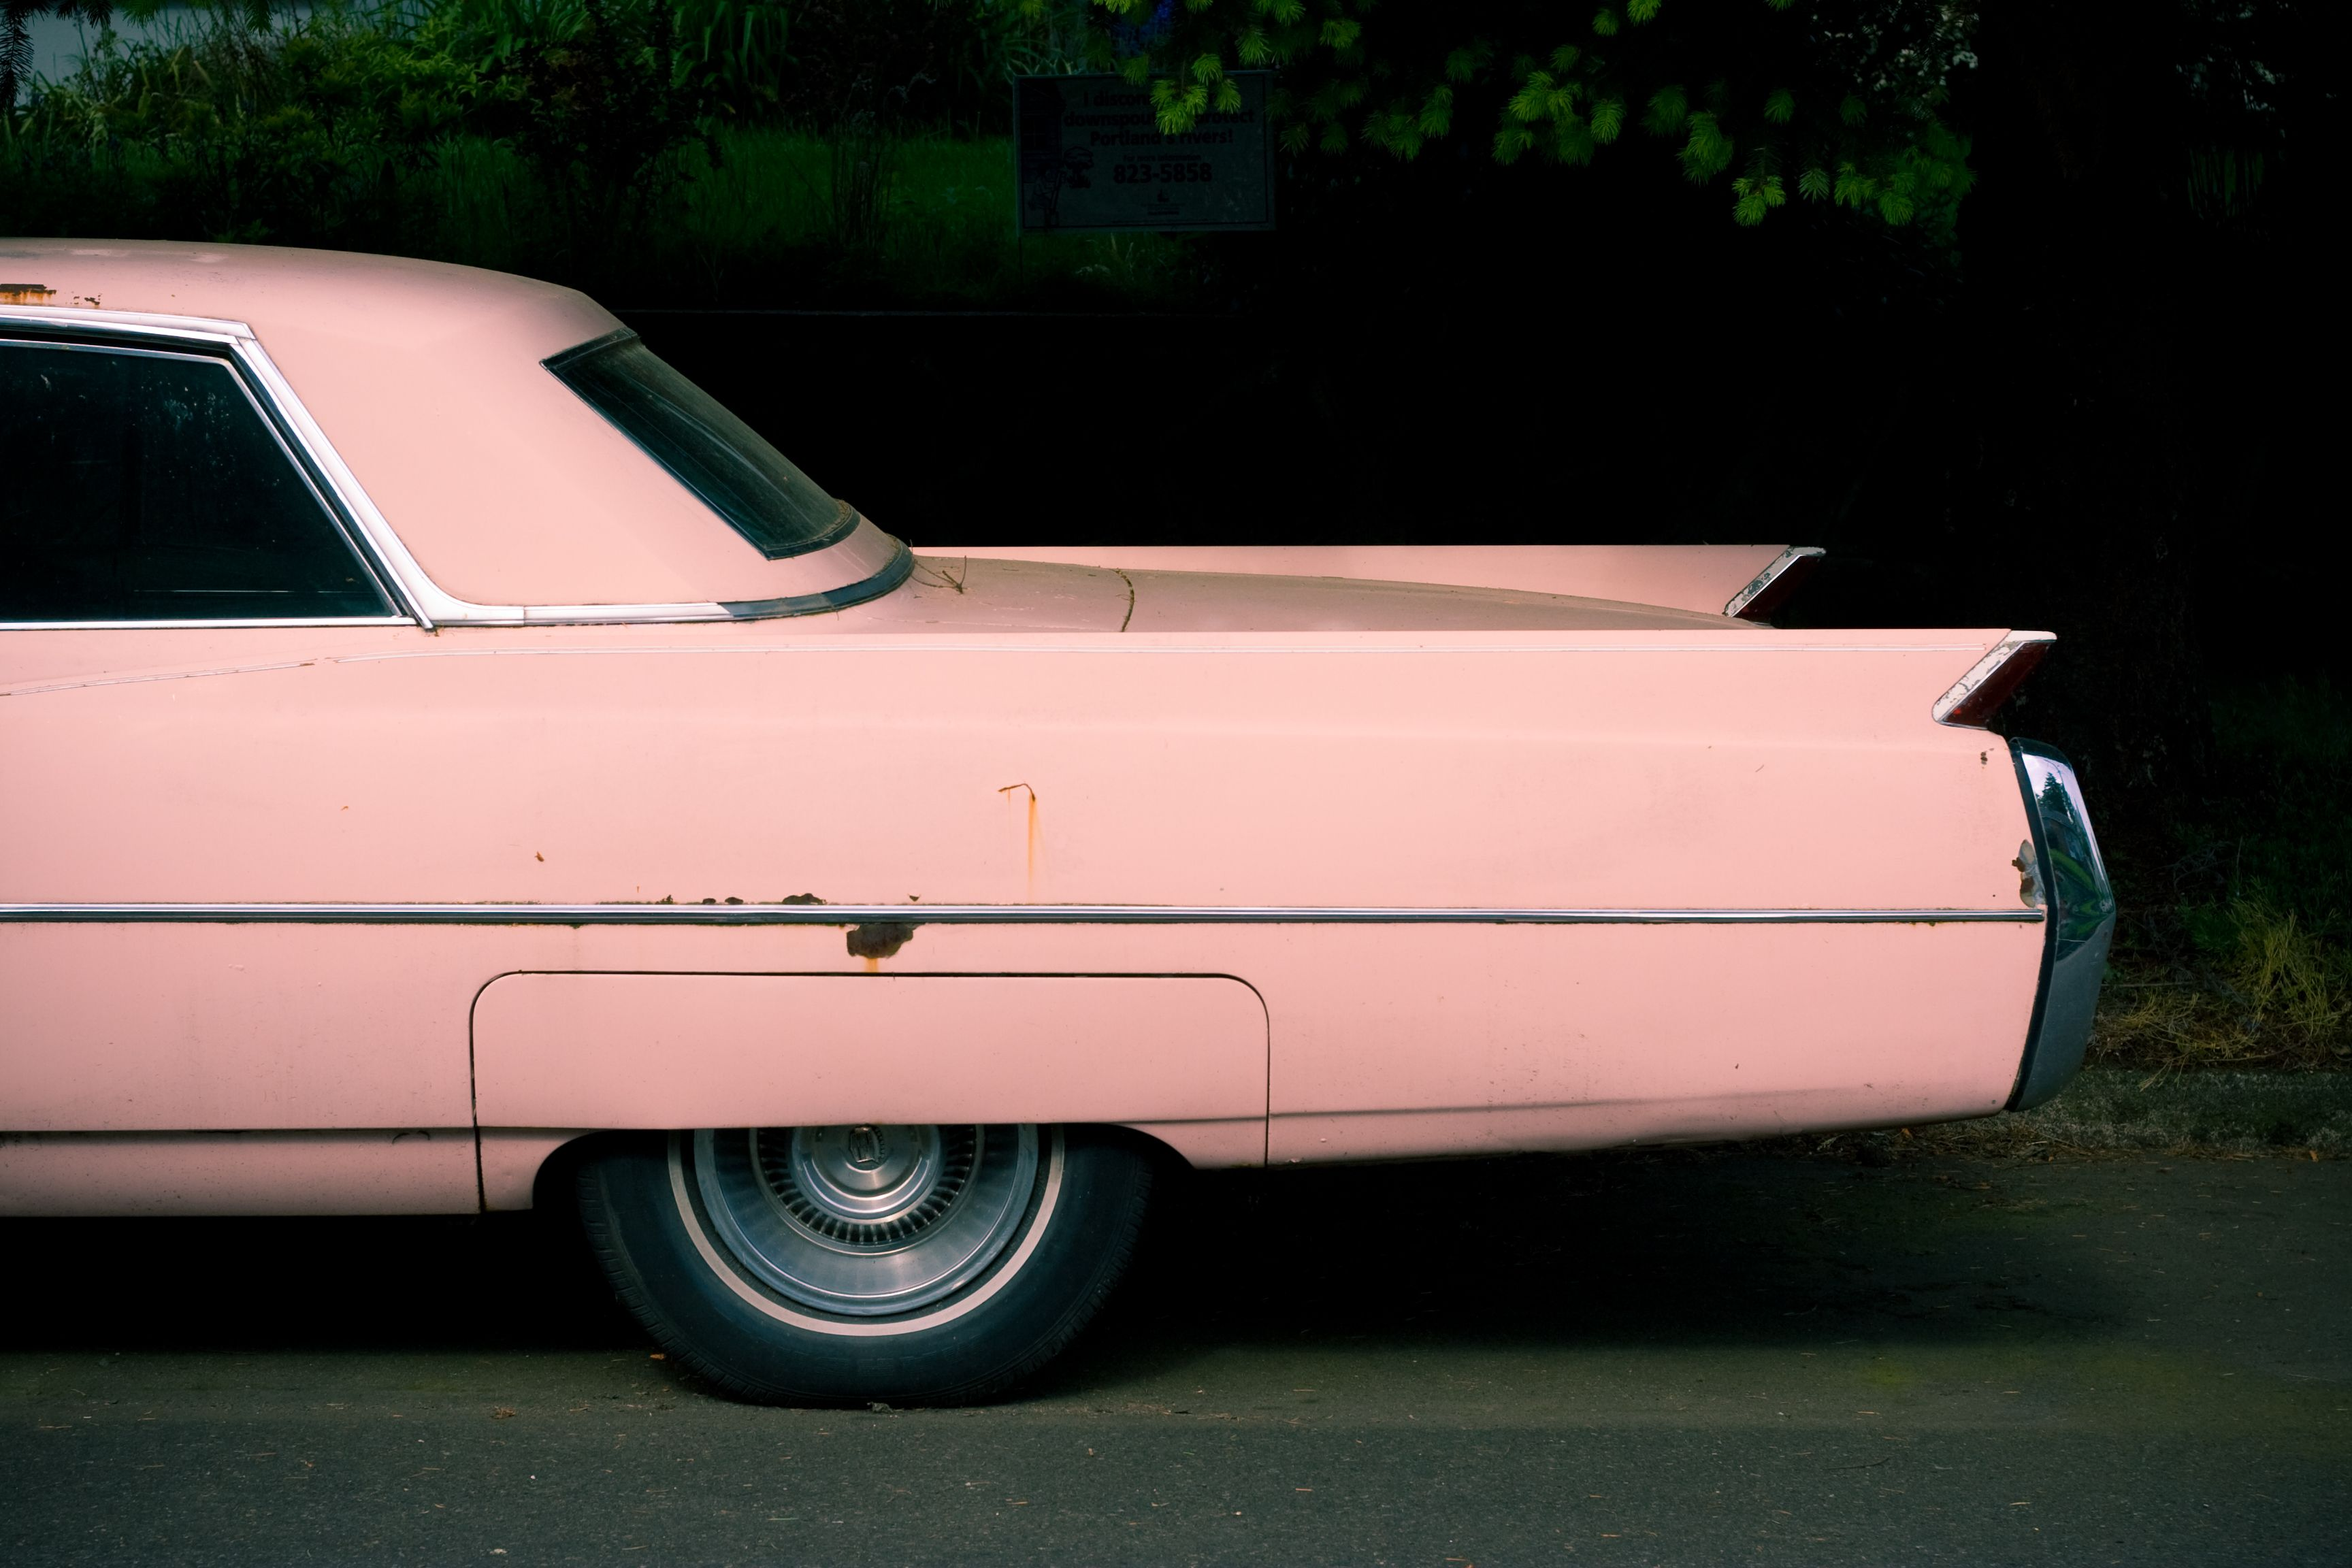 10 Tips For A Successful Car Buying Experience On Craigslist